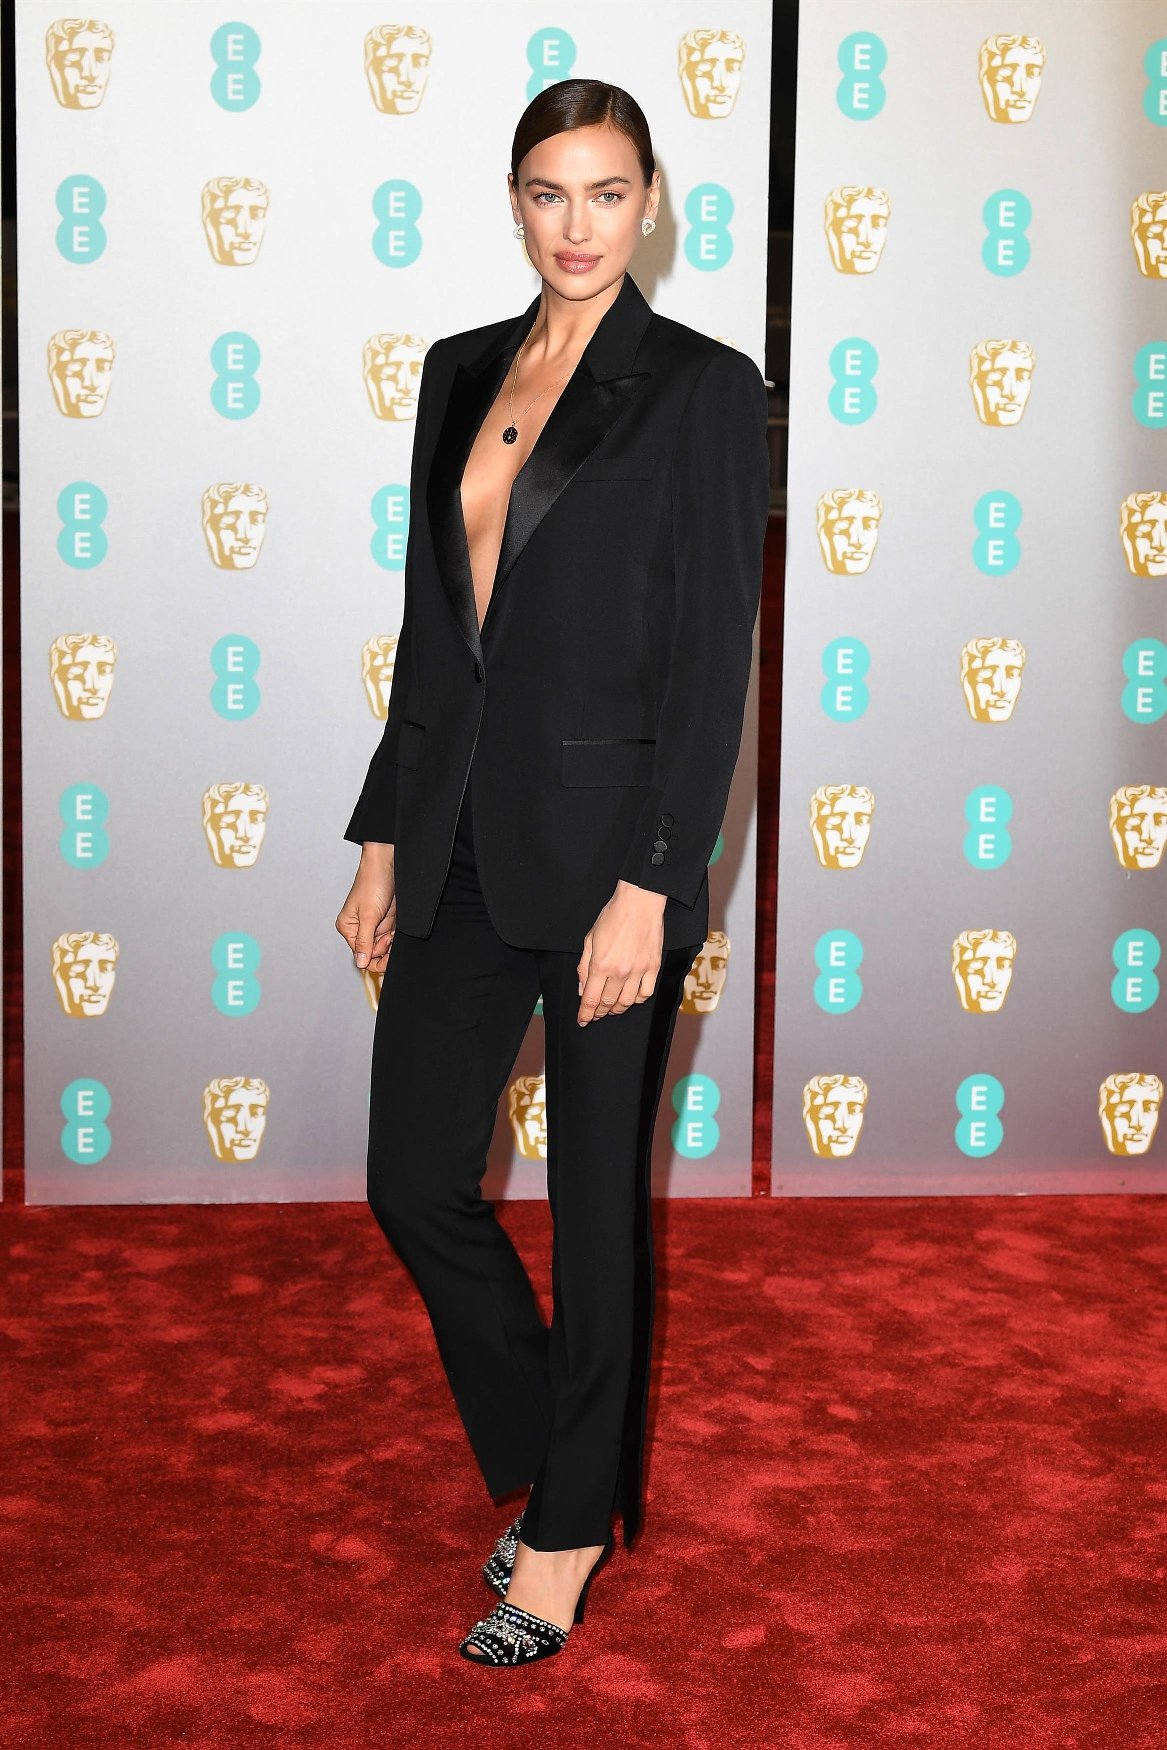 London, UNITED KINGDOM  - Irina Shayk at the EE British Academy Film Awards at The Royal Albert Hall in London. FEBRUARY 10th 2019., Image: 413118228, License: Rights-managed, Restrictions: , Model Release: no, Credit line: Profimedia, Backgrid USA